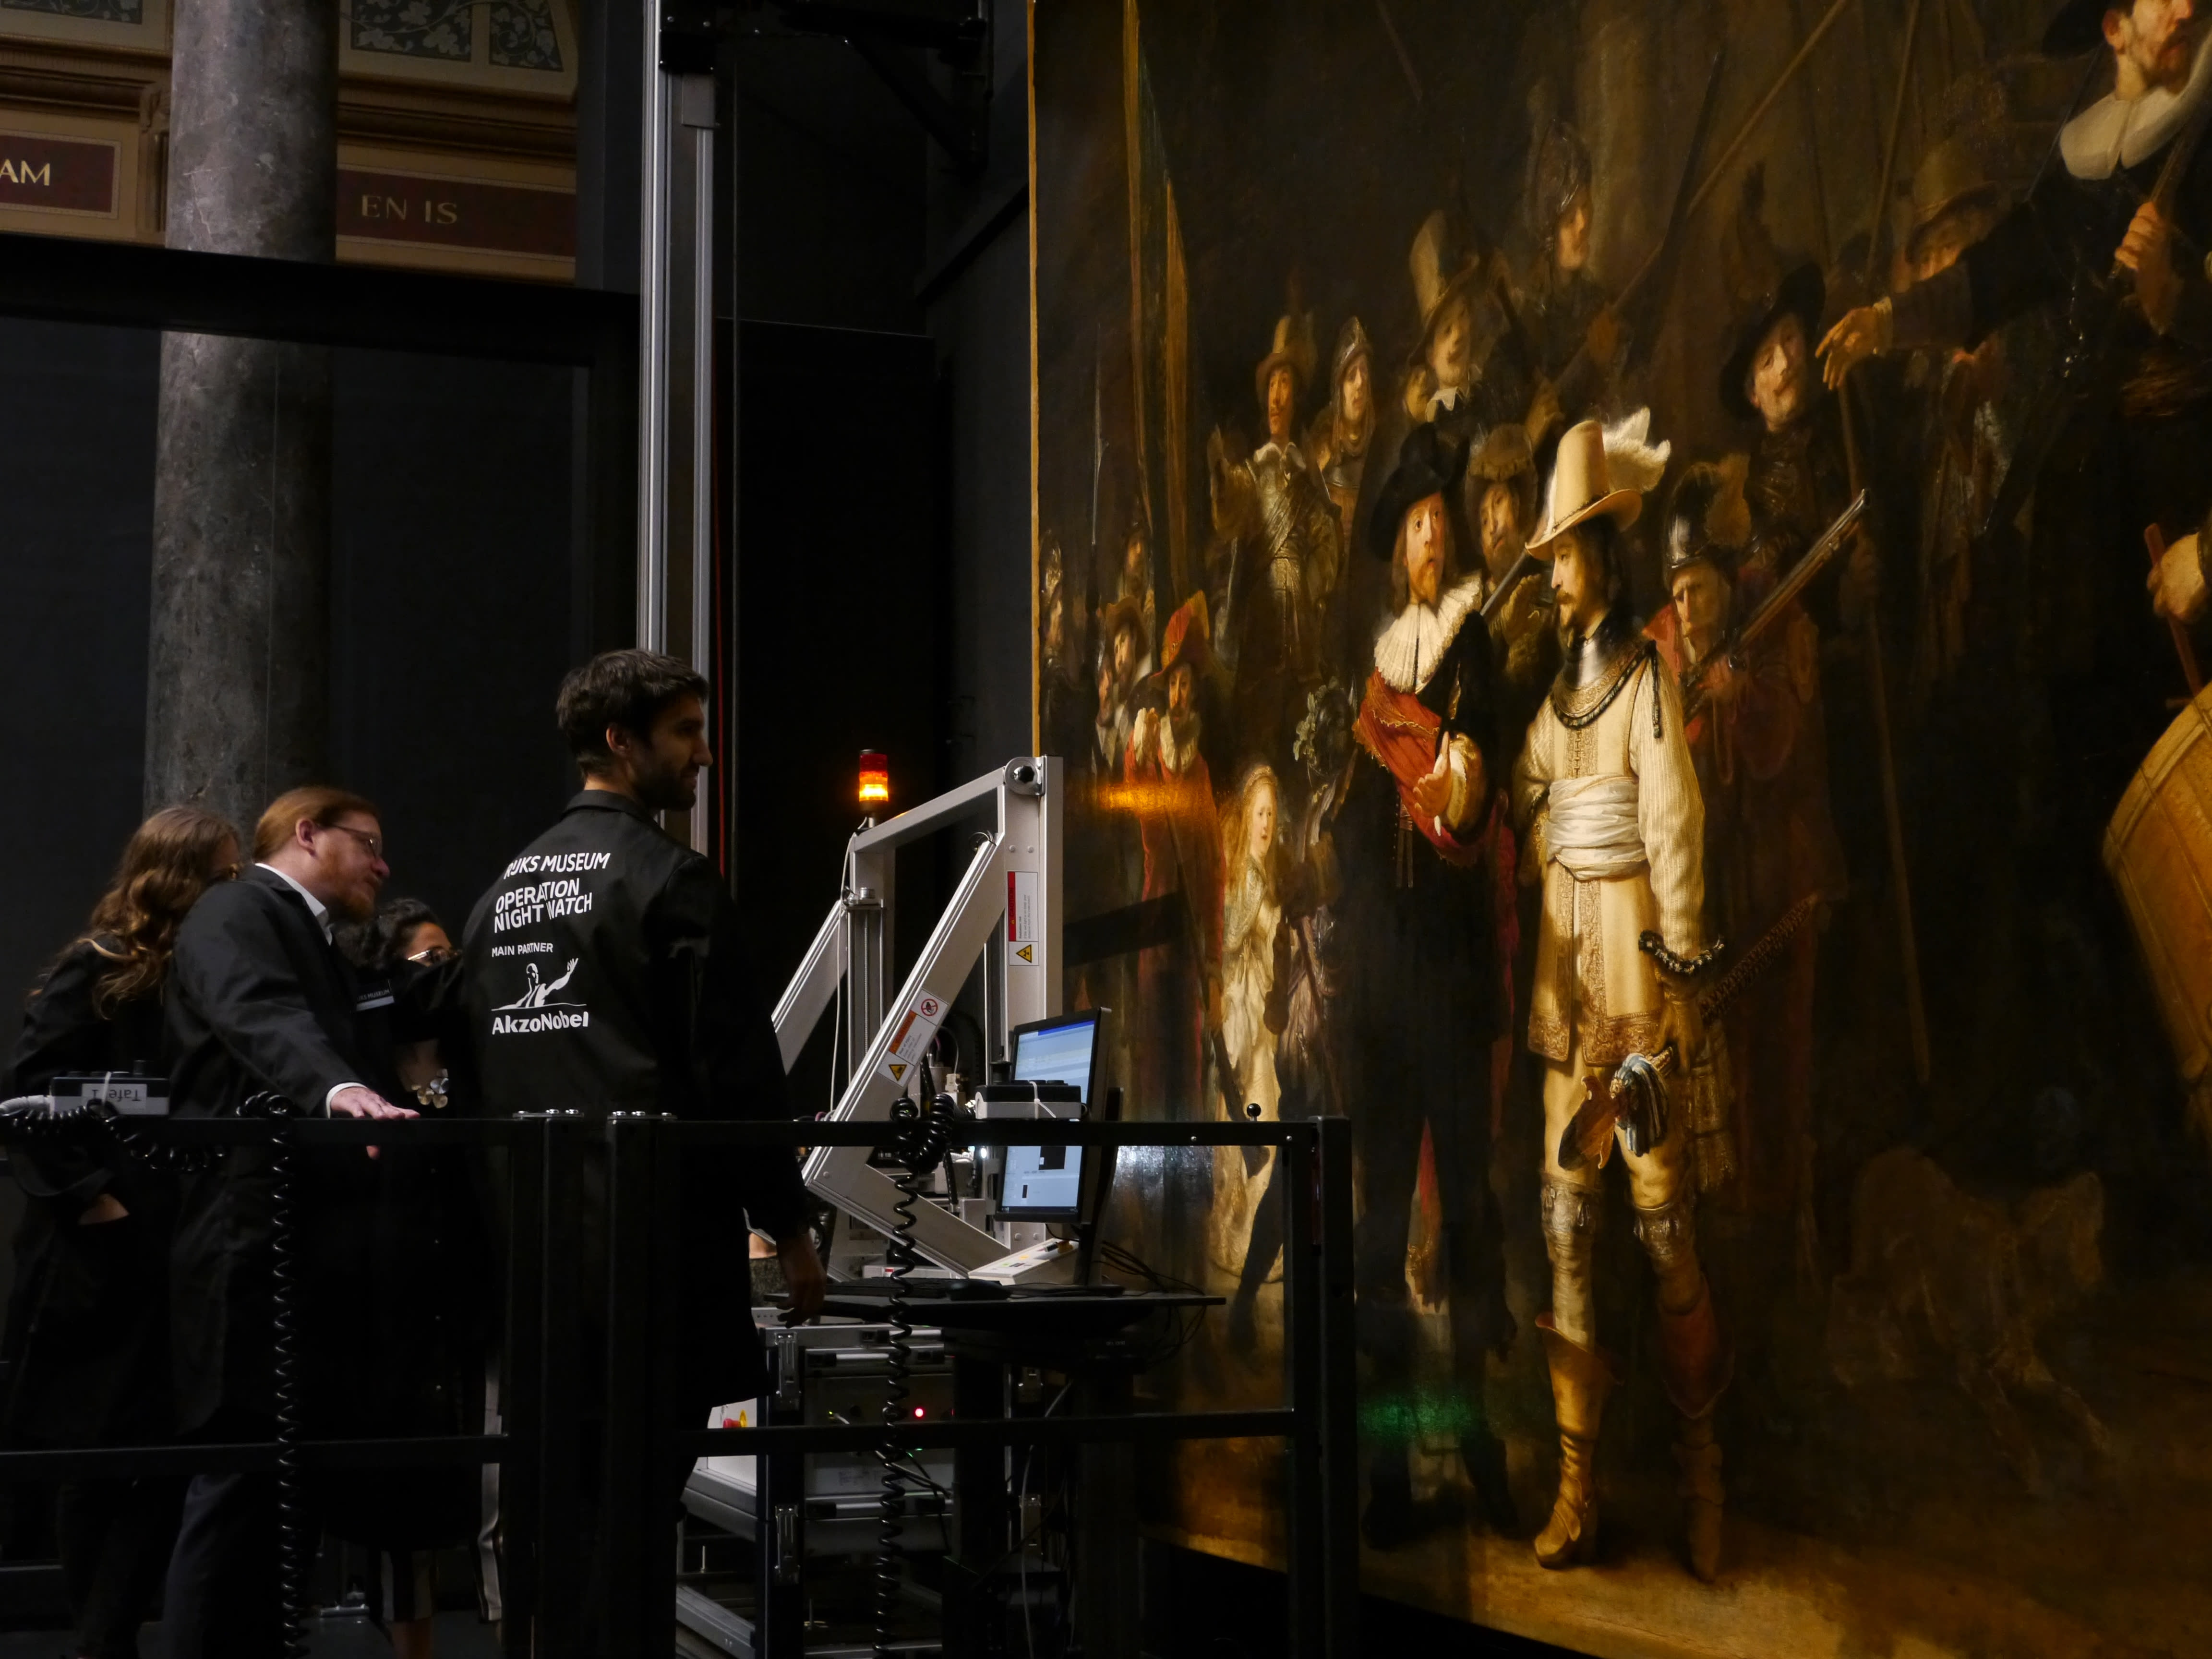 Research, restoration begins on Rembrandt's 'Night Watch'